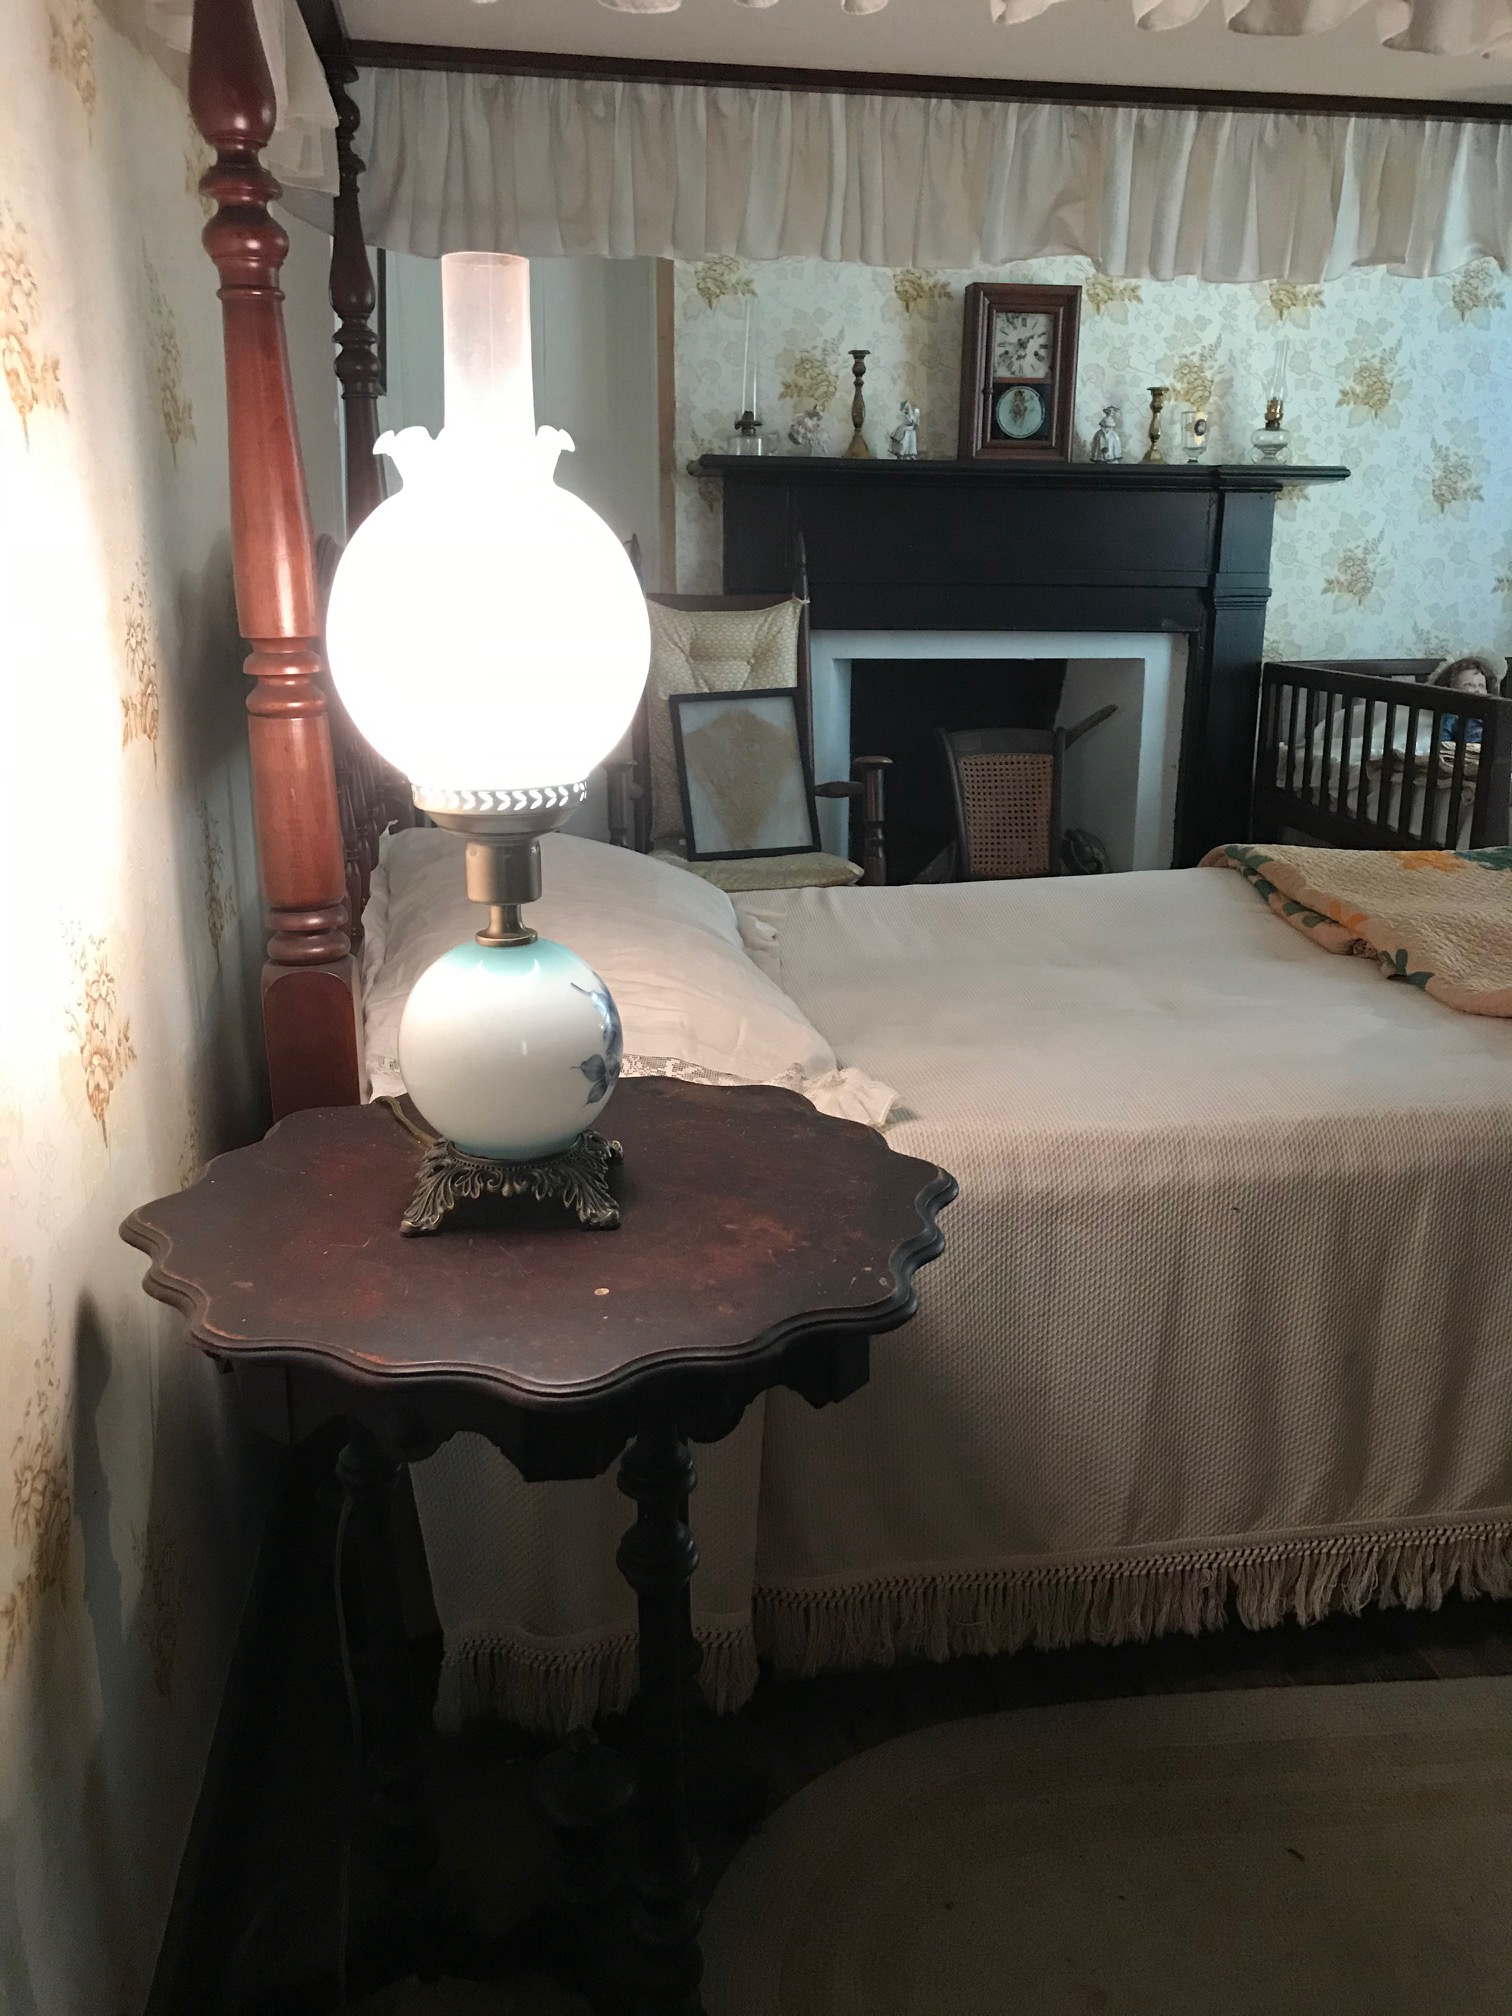 Bedside table which sat by John C. Calhoun on his deathbed